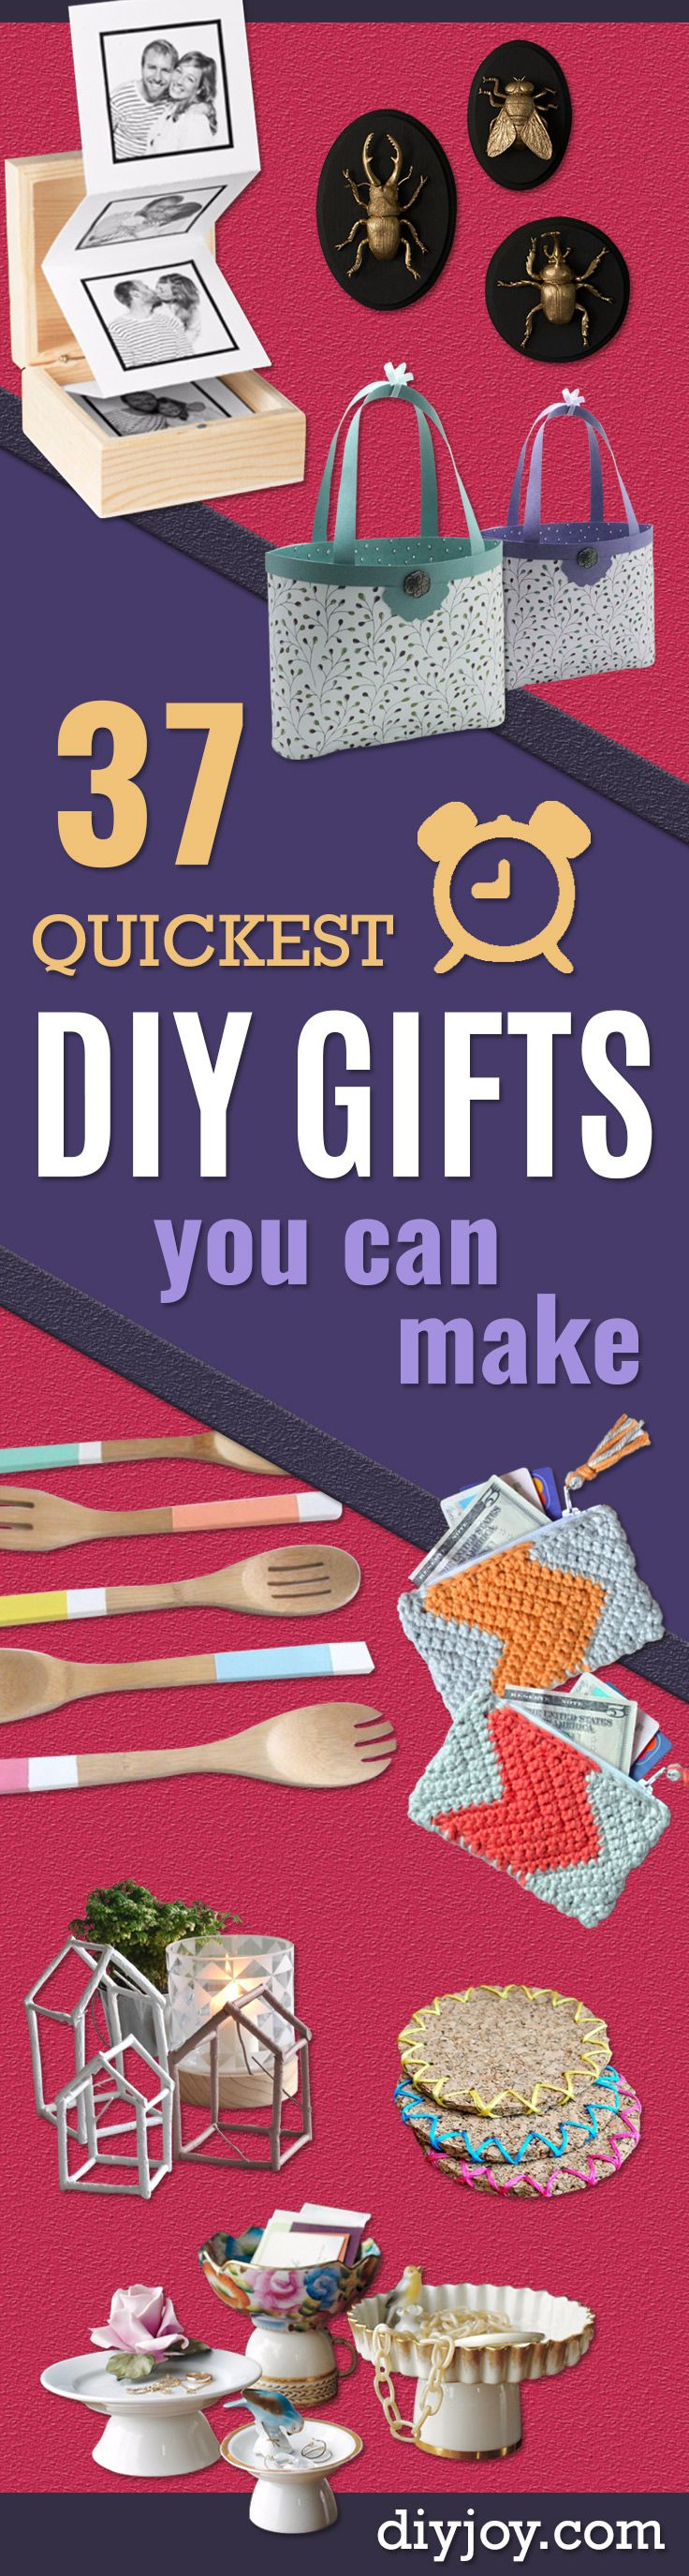 Best 86 diy gift ideas ideas on pinterest gift ideas bag 37 quickest diy gifts you can make solutioingenieria Gallery